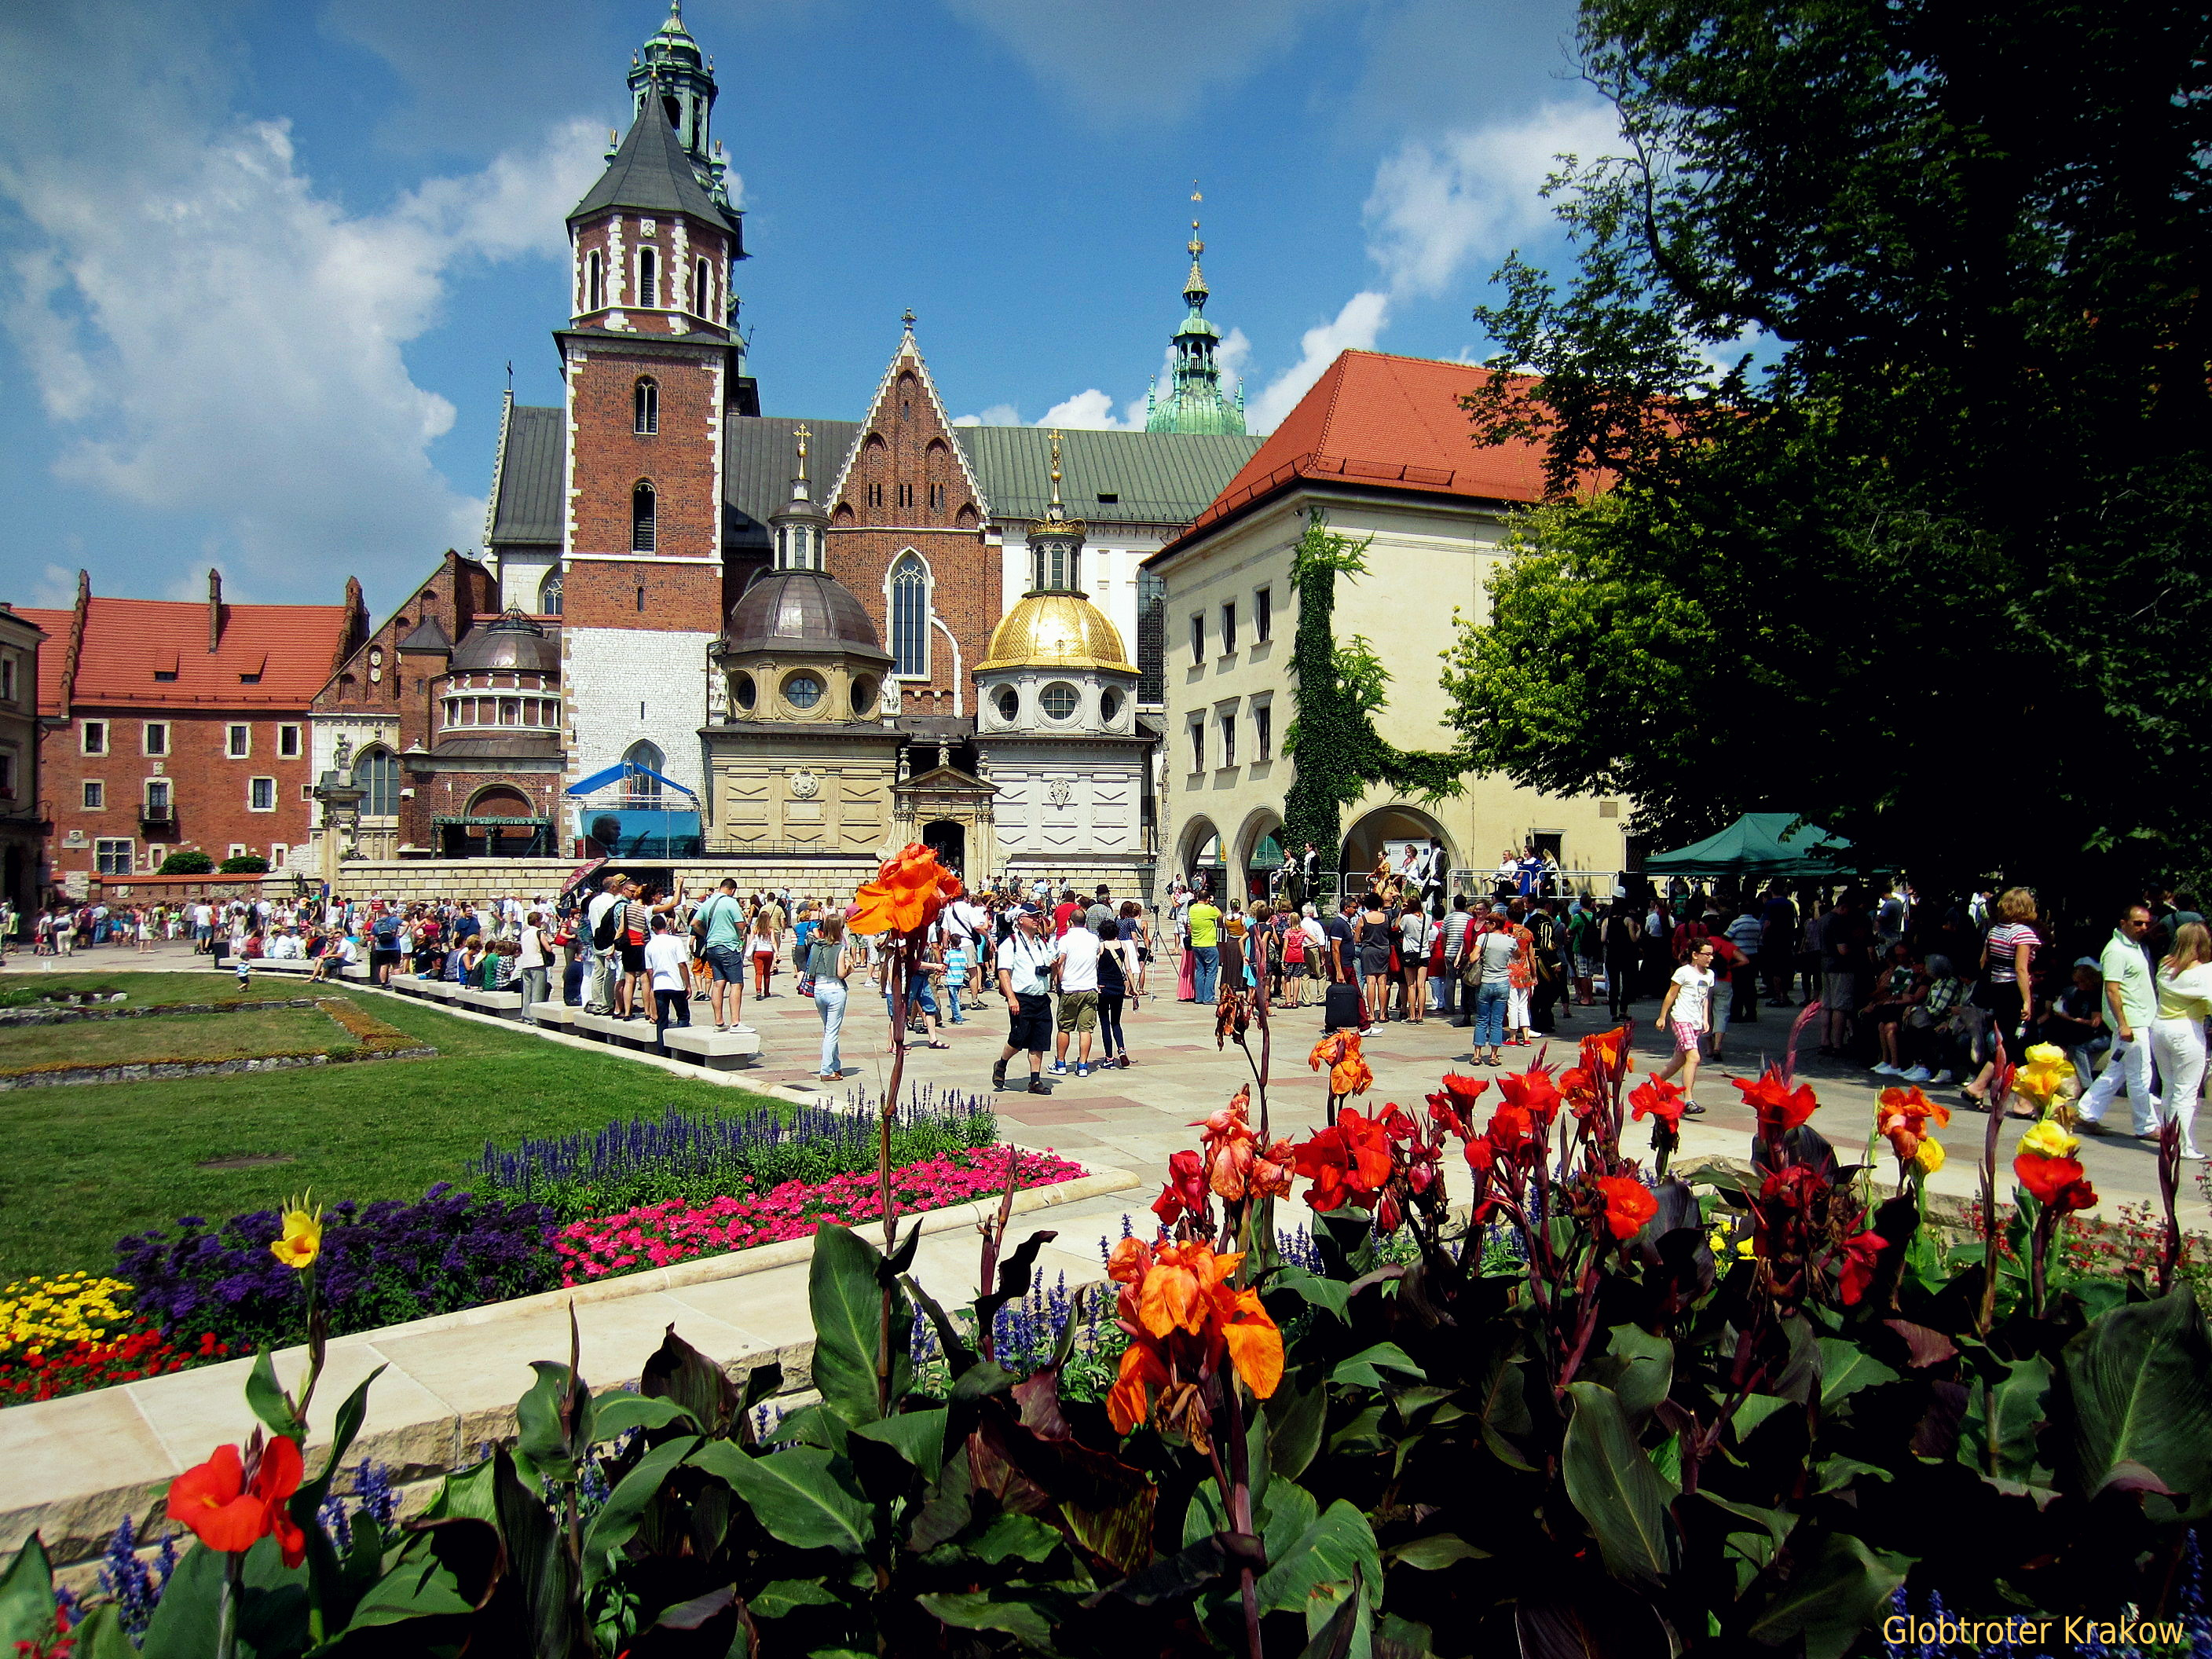 Weather in Poland may be capricious. July and August are the hottest months with the most sunny days. On the other hand, during those days city is full of tourists.